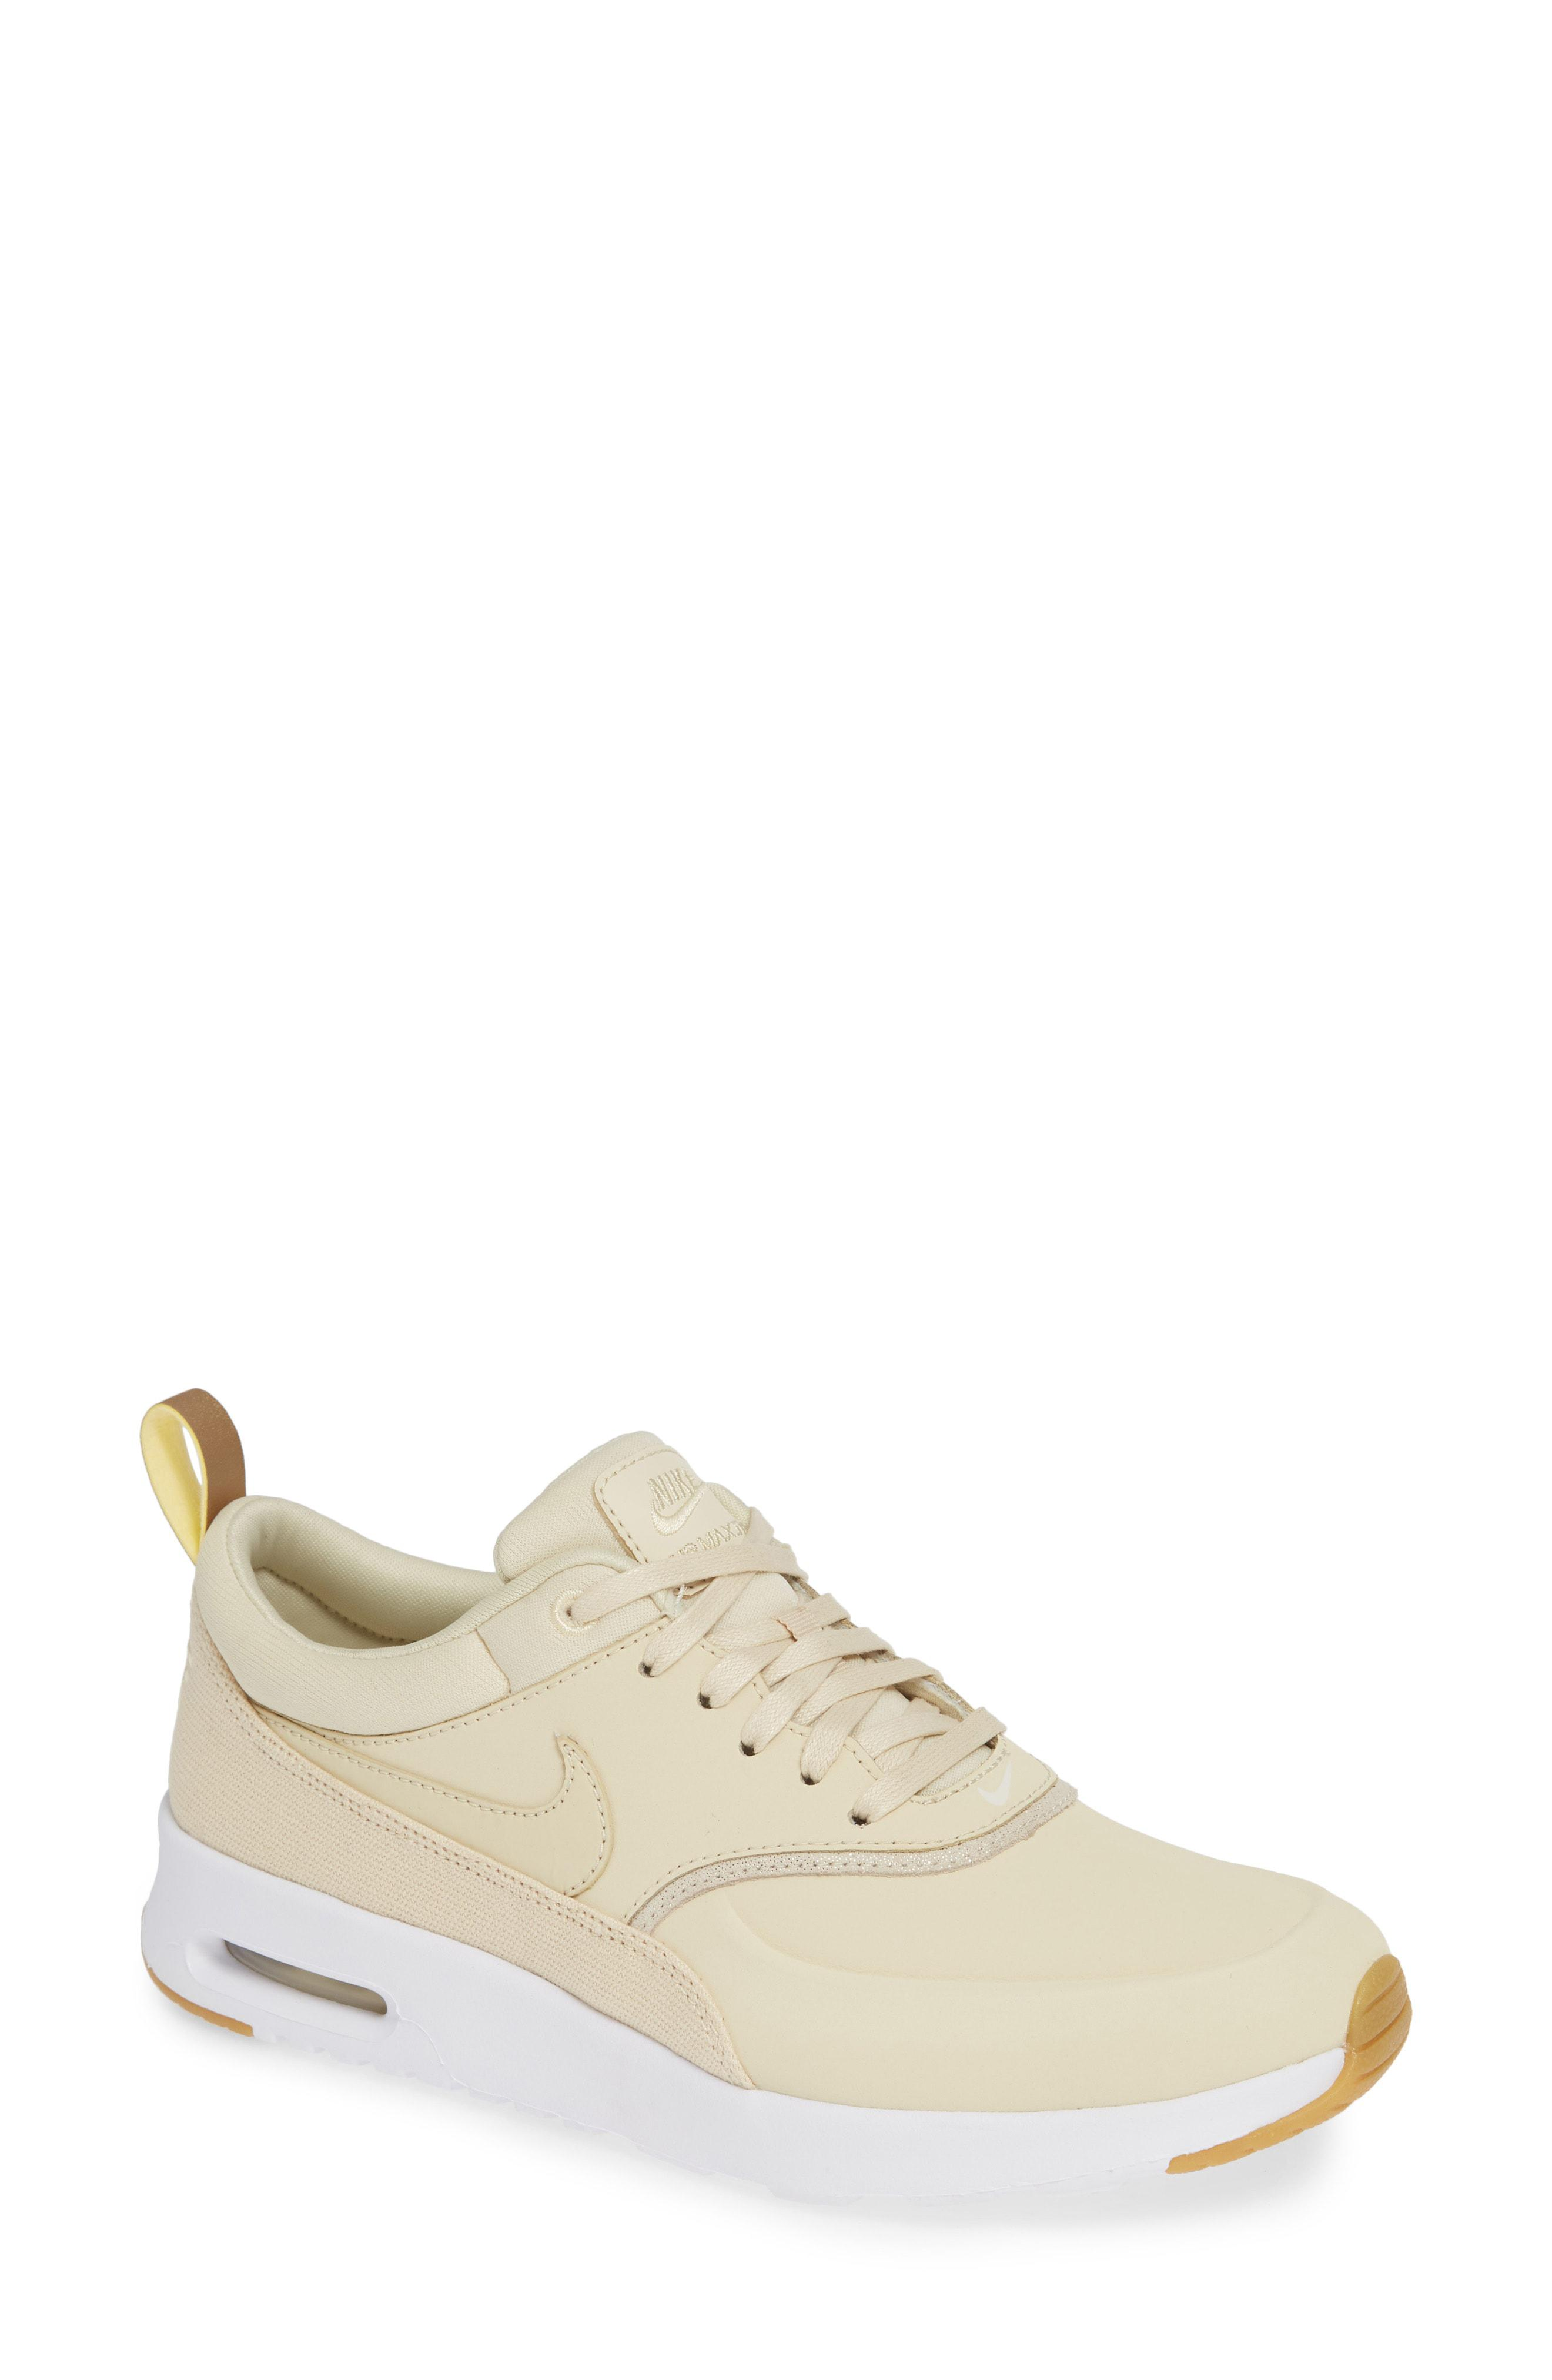 9f601a38e0a5 Lyst - Nike Air Max Thea Sneaker in Natural